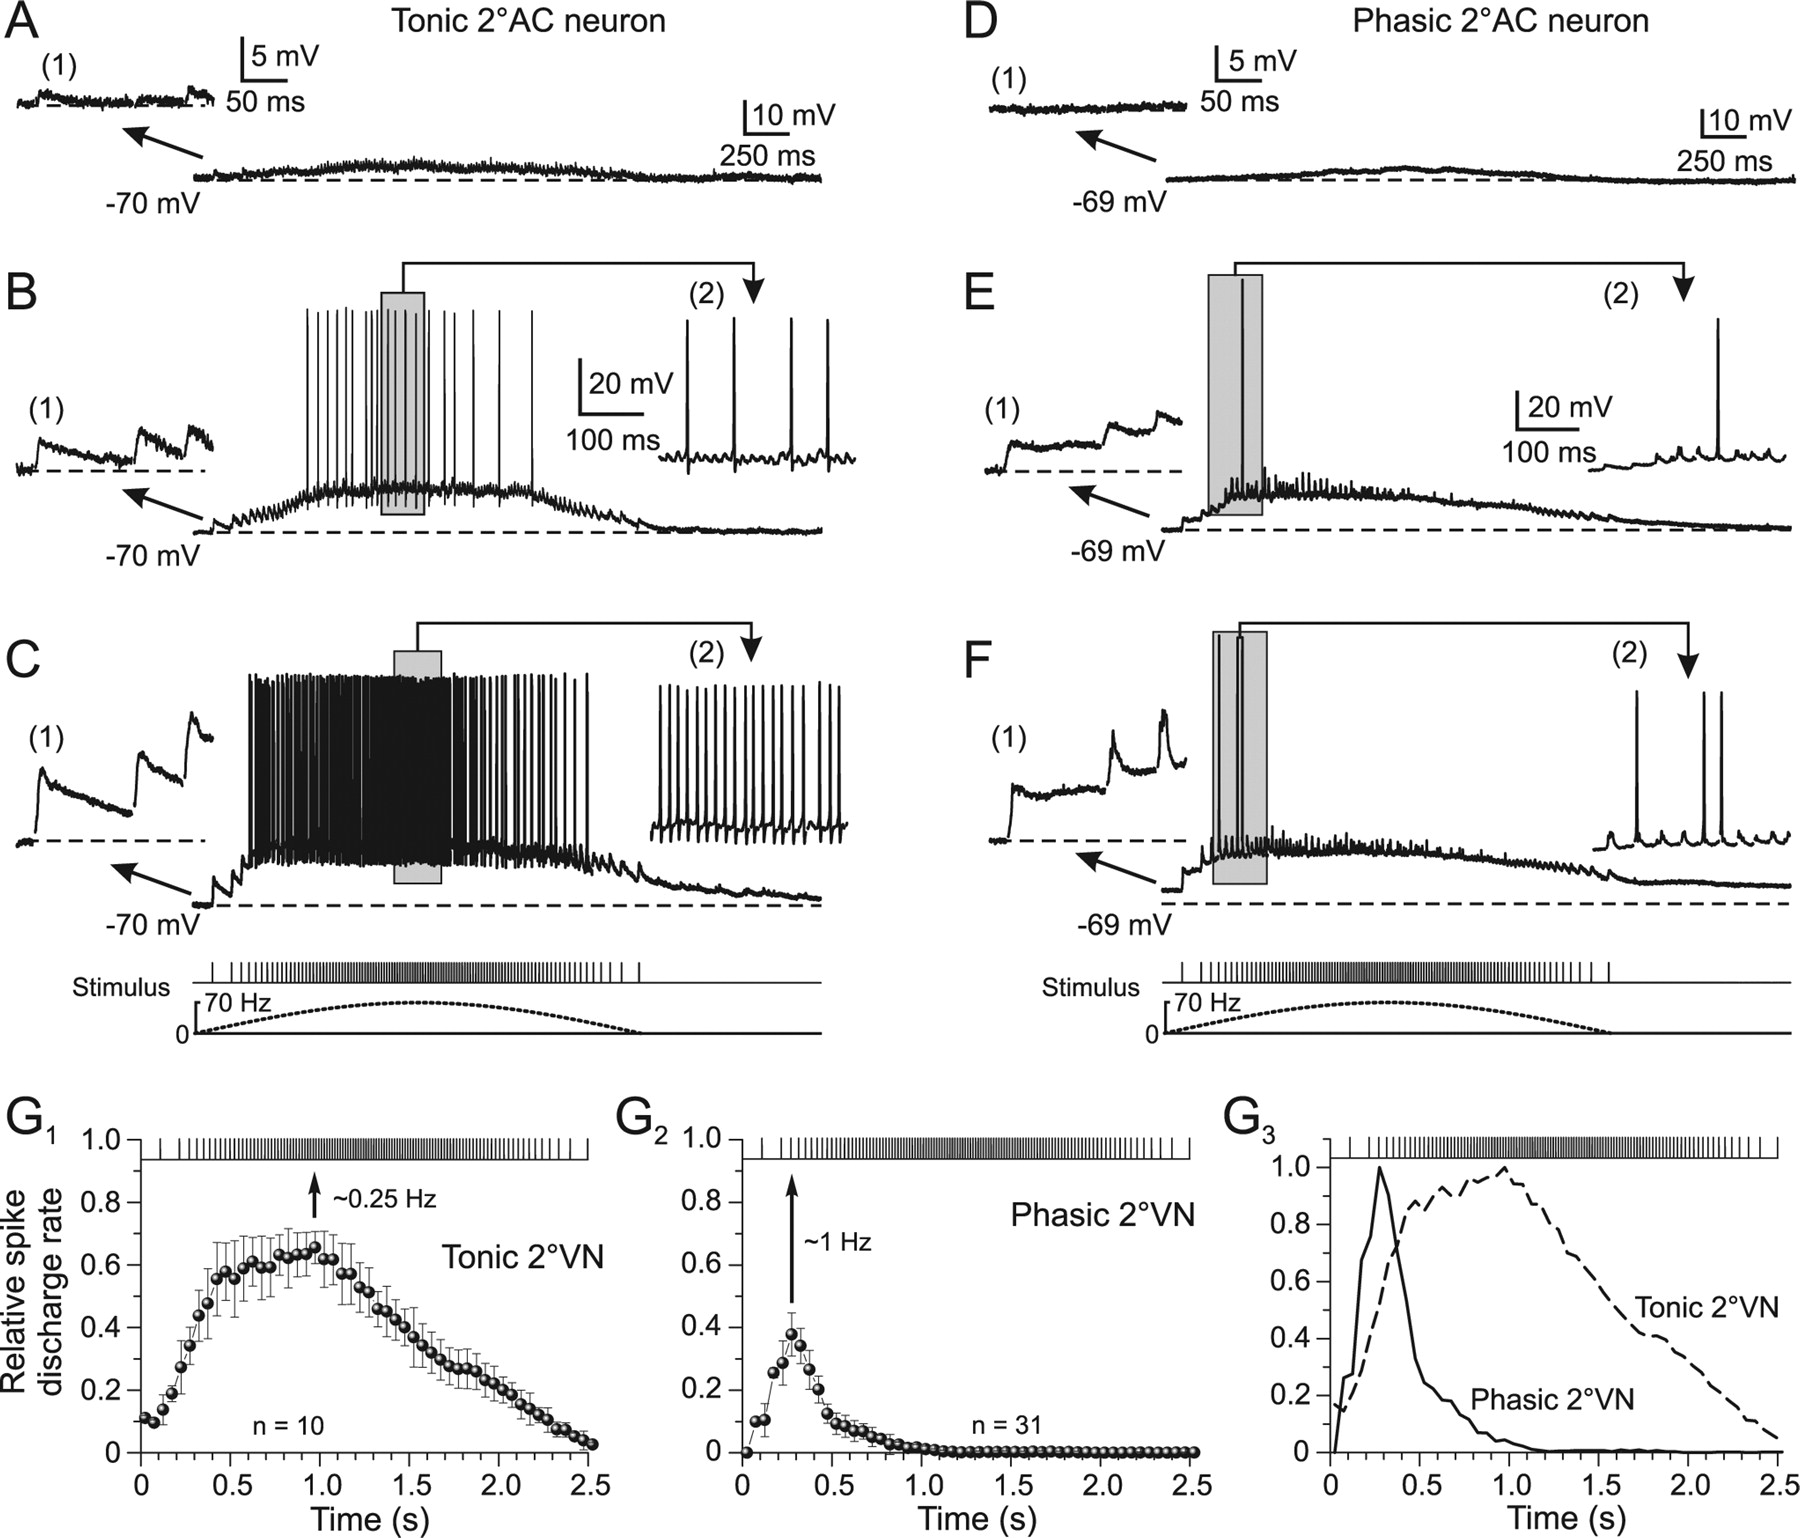 Differential Dynamic Processing Of Afferent Signals In Frog Tonic And Phasic Second Order